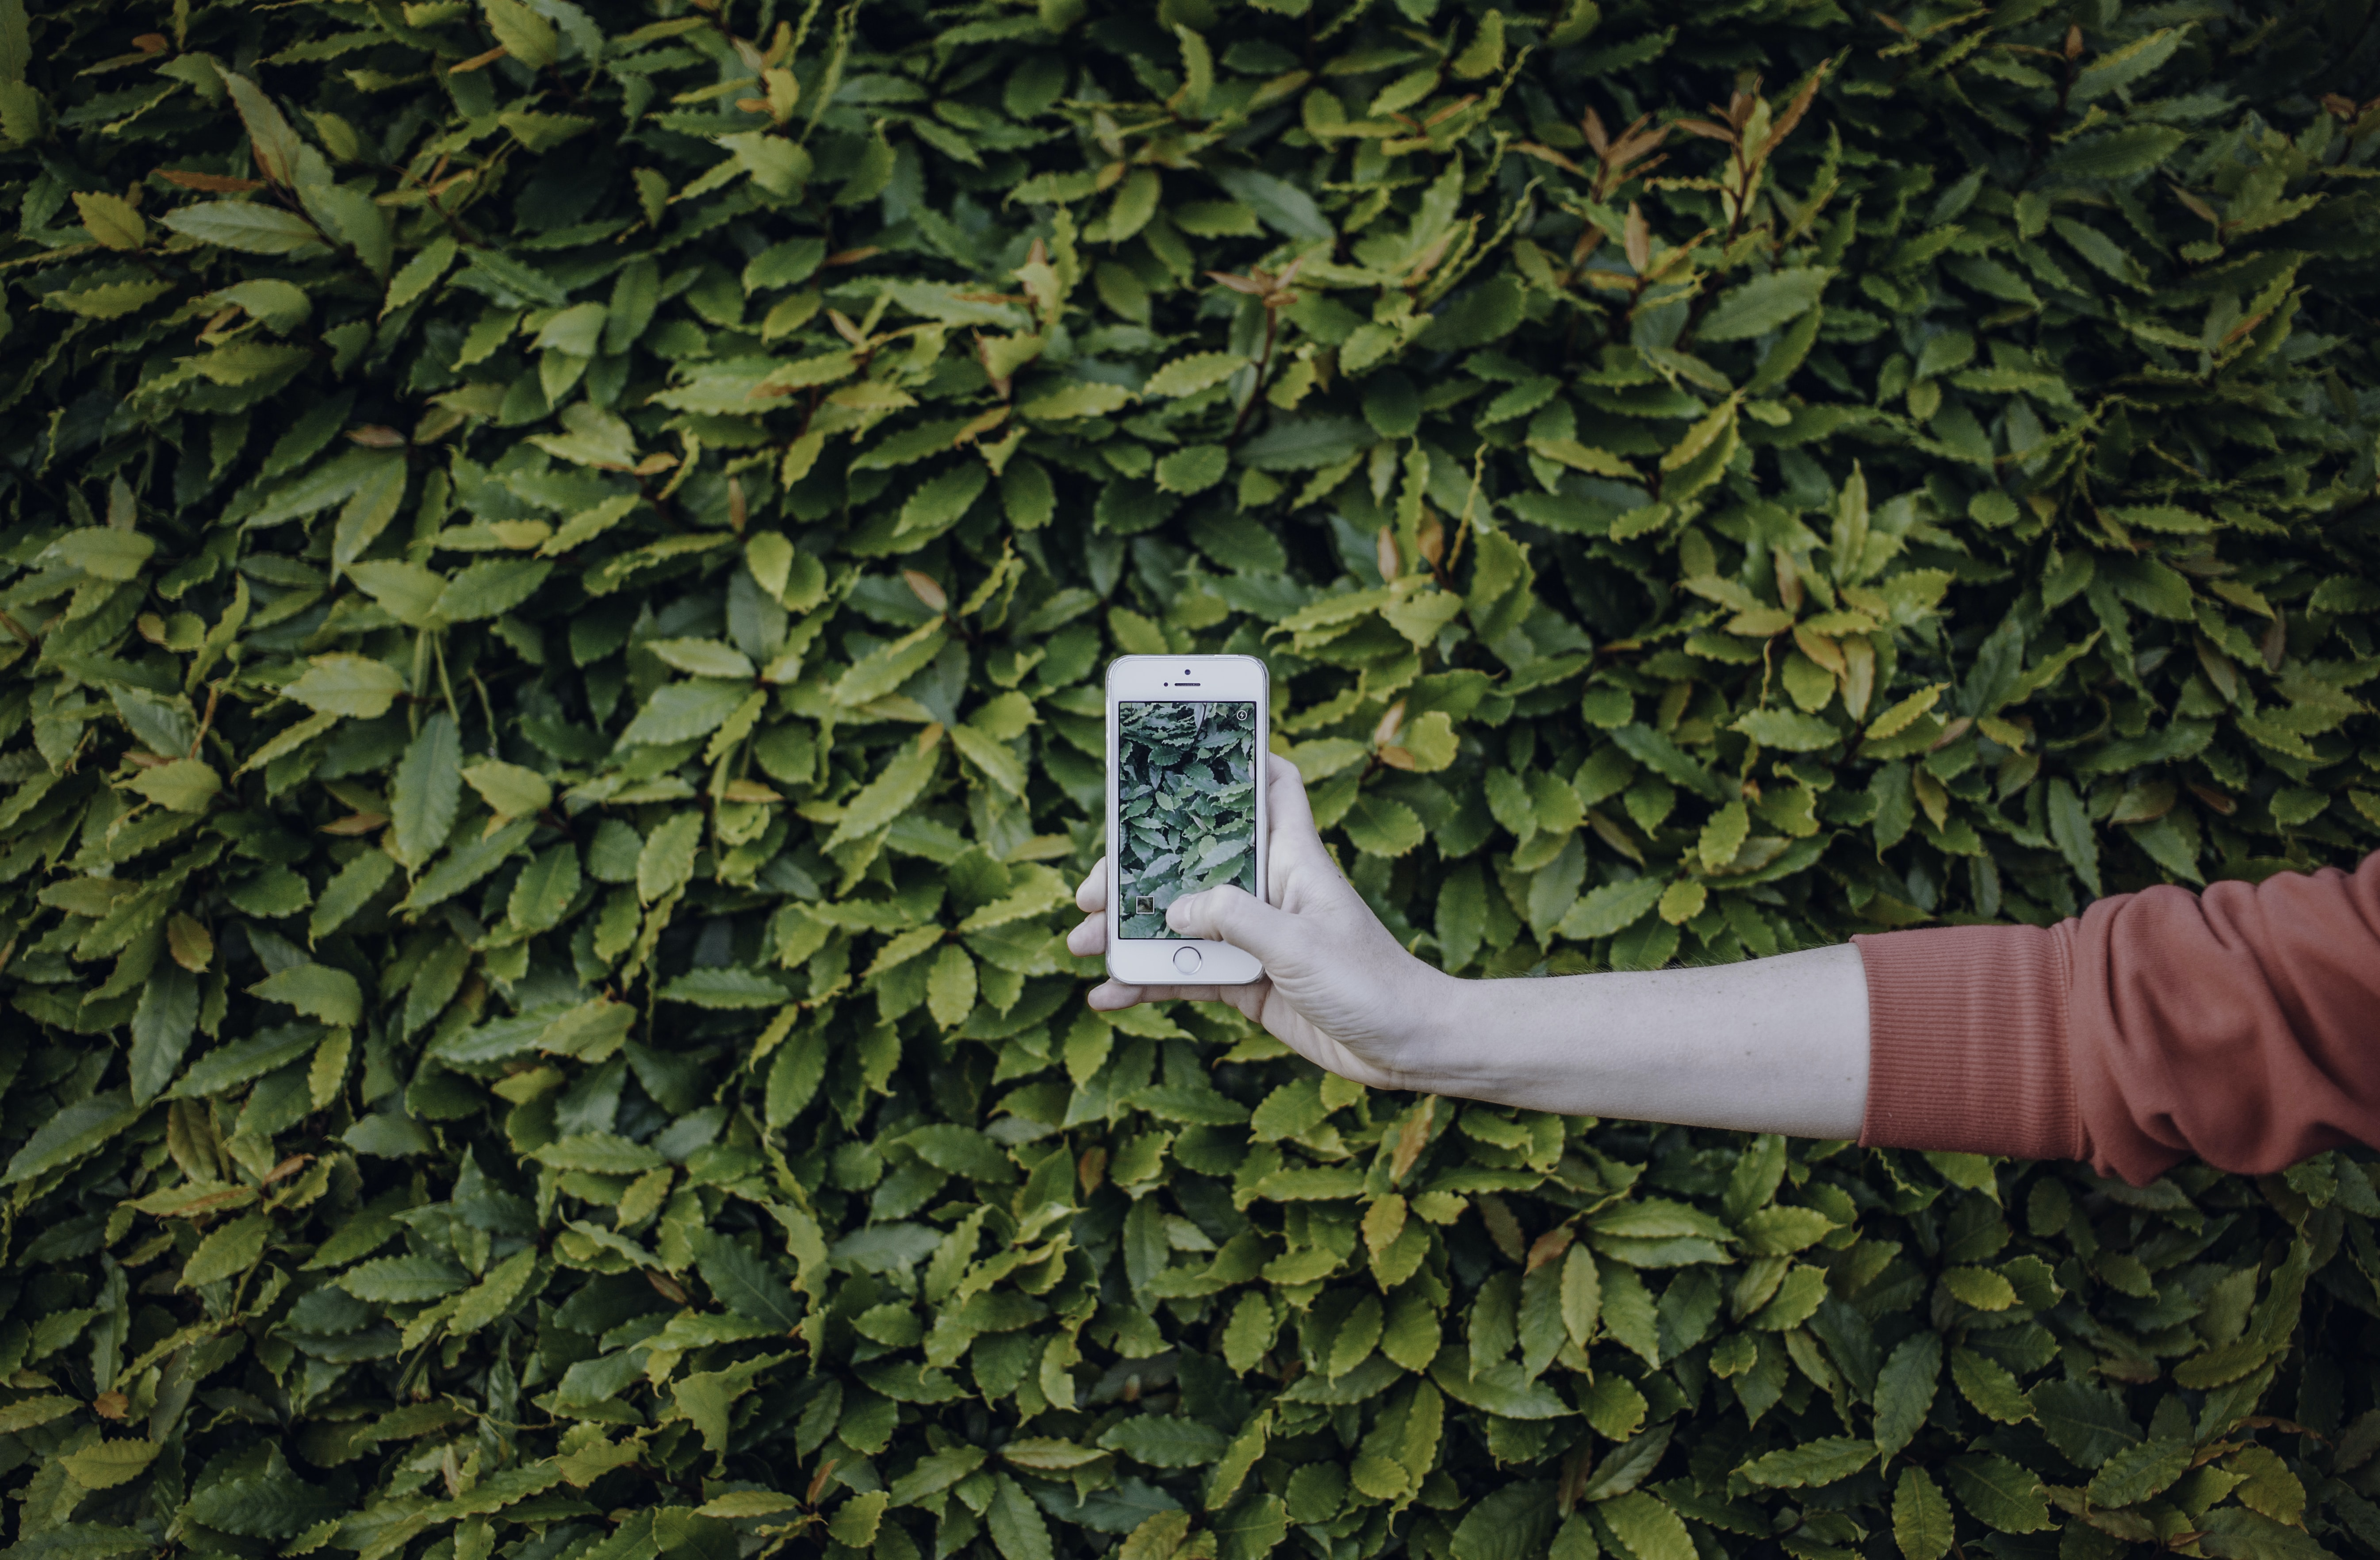 person taking photo of shrub